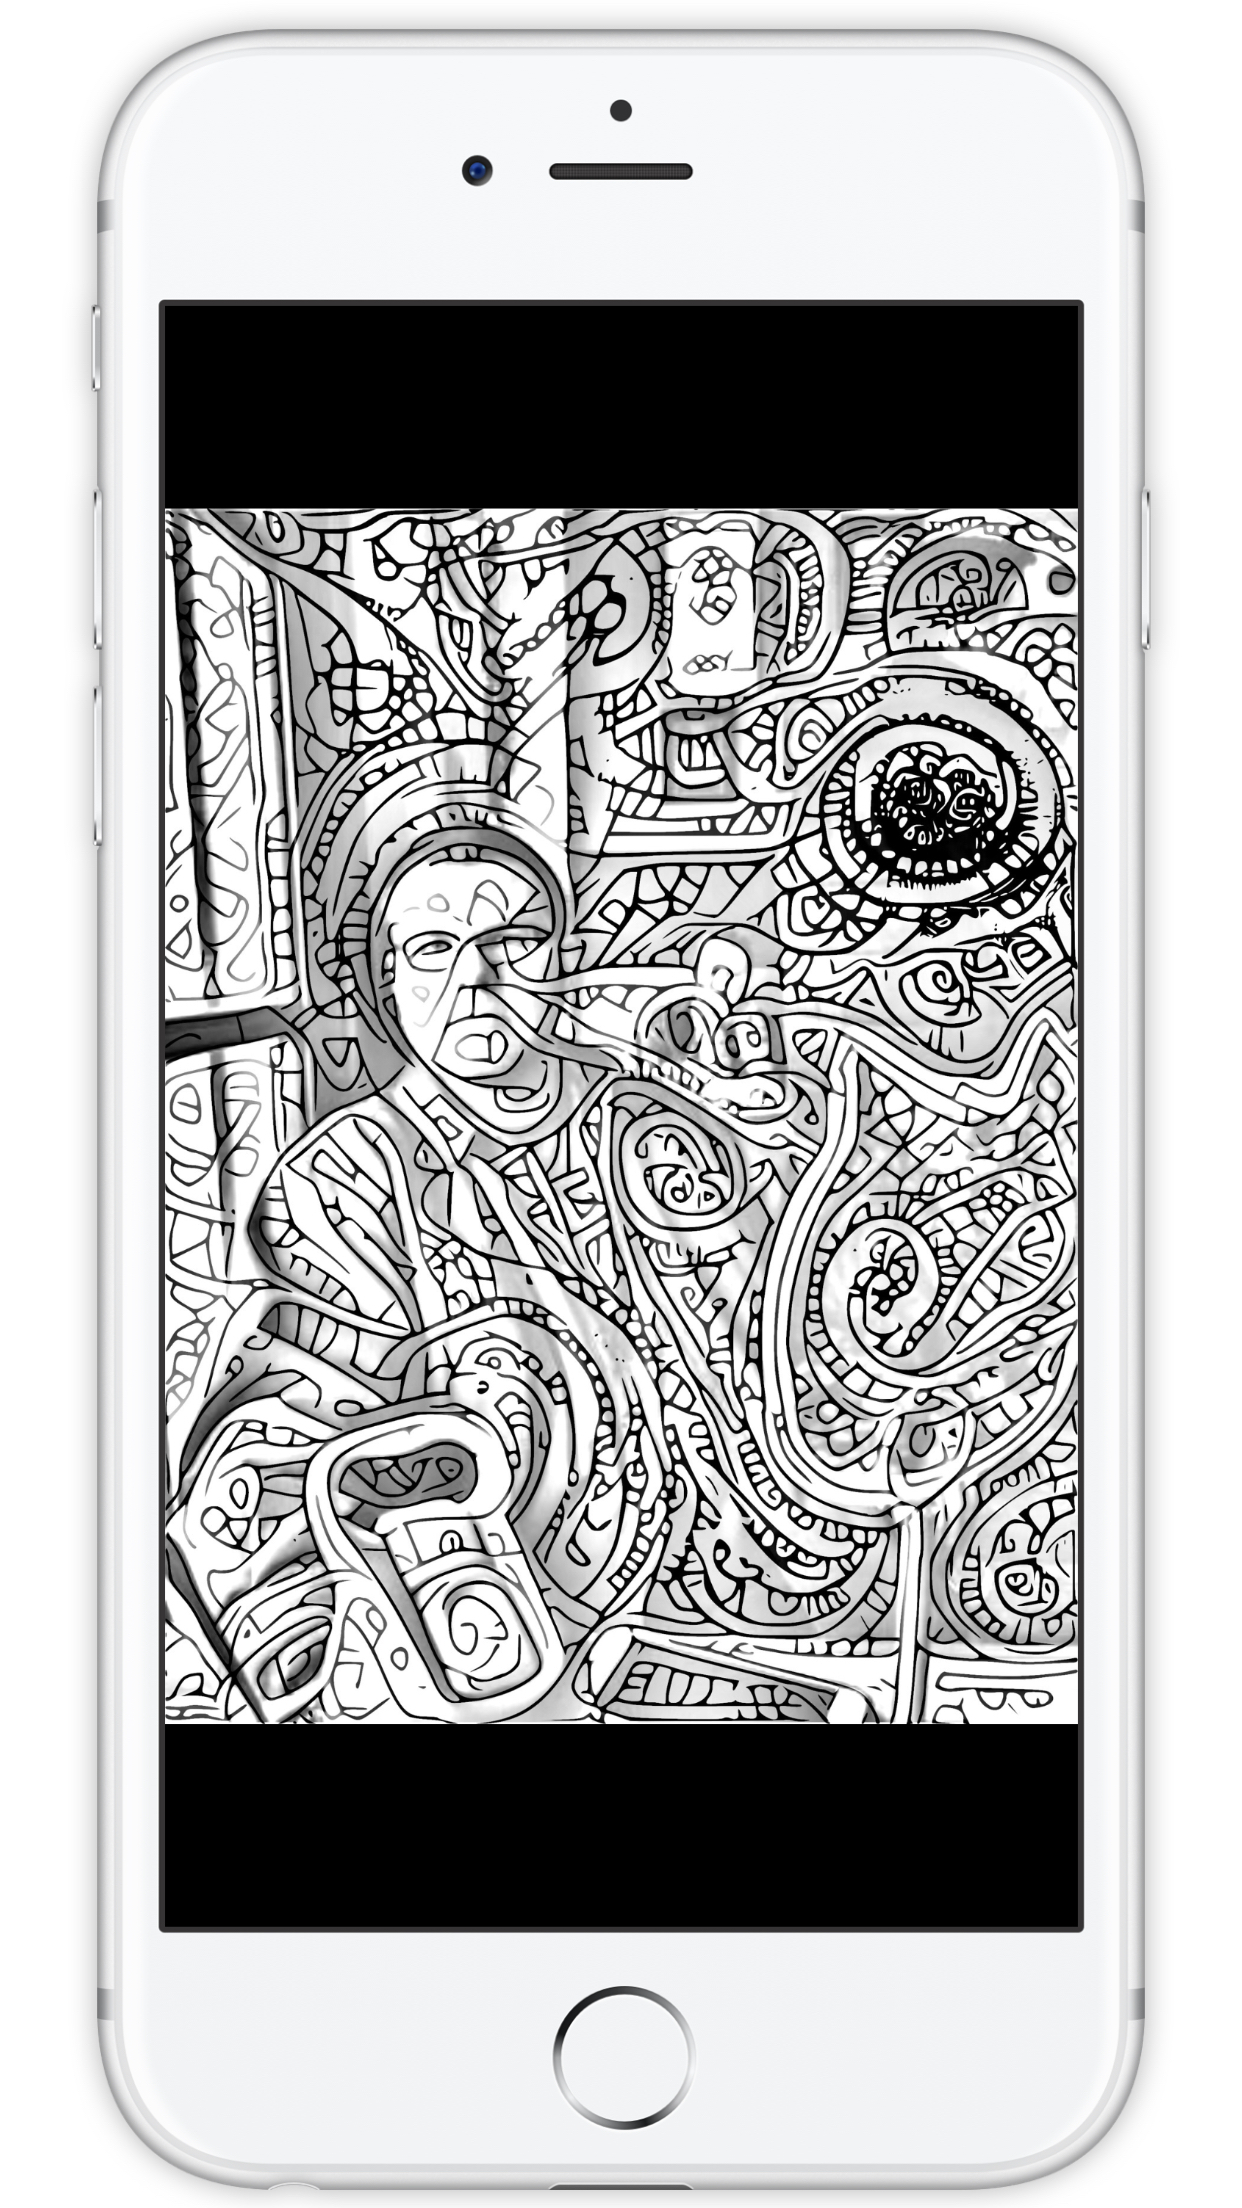 iPhone Coloring Page with Wallpapers Background Download Of Luxury iPhone 6 Coloring Page Download